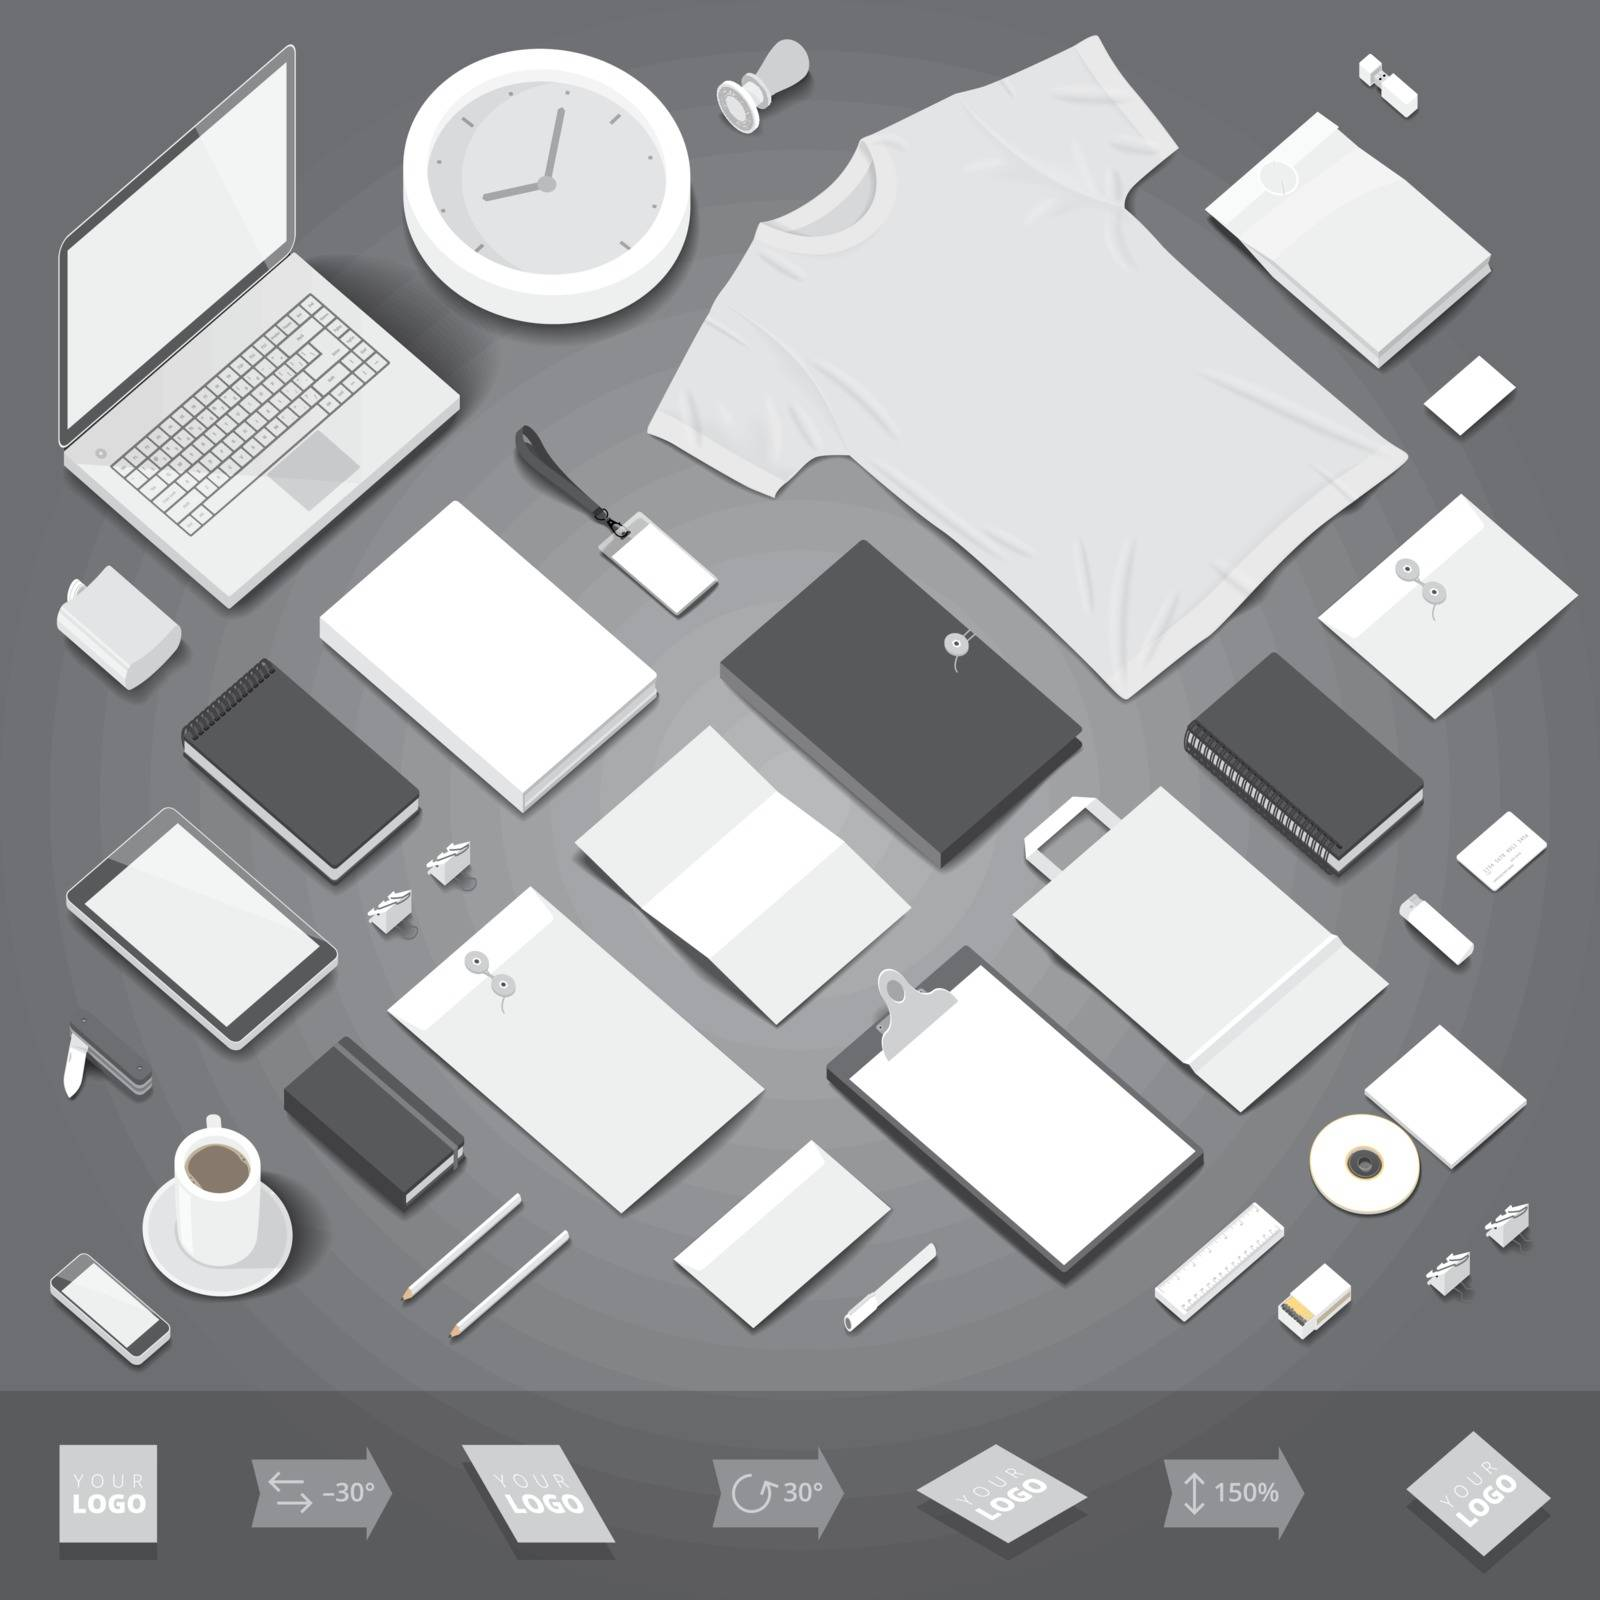 Corporate identity stationery objects mock-up template. Isometric style. Vector illustration.